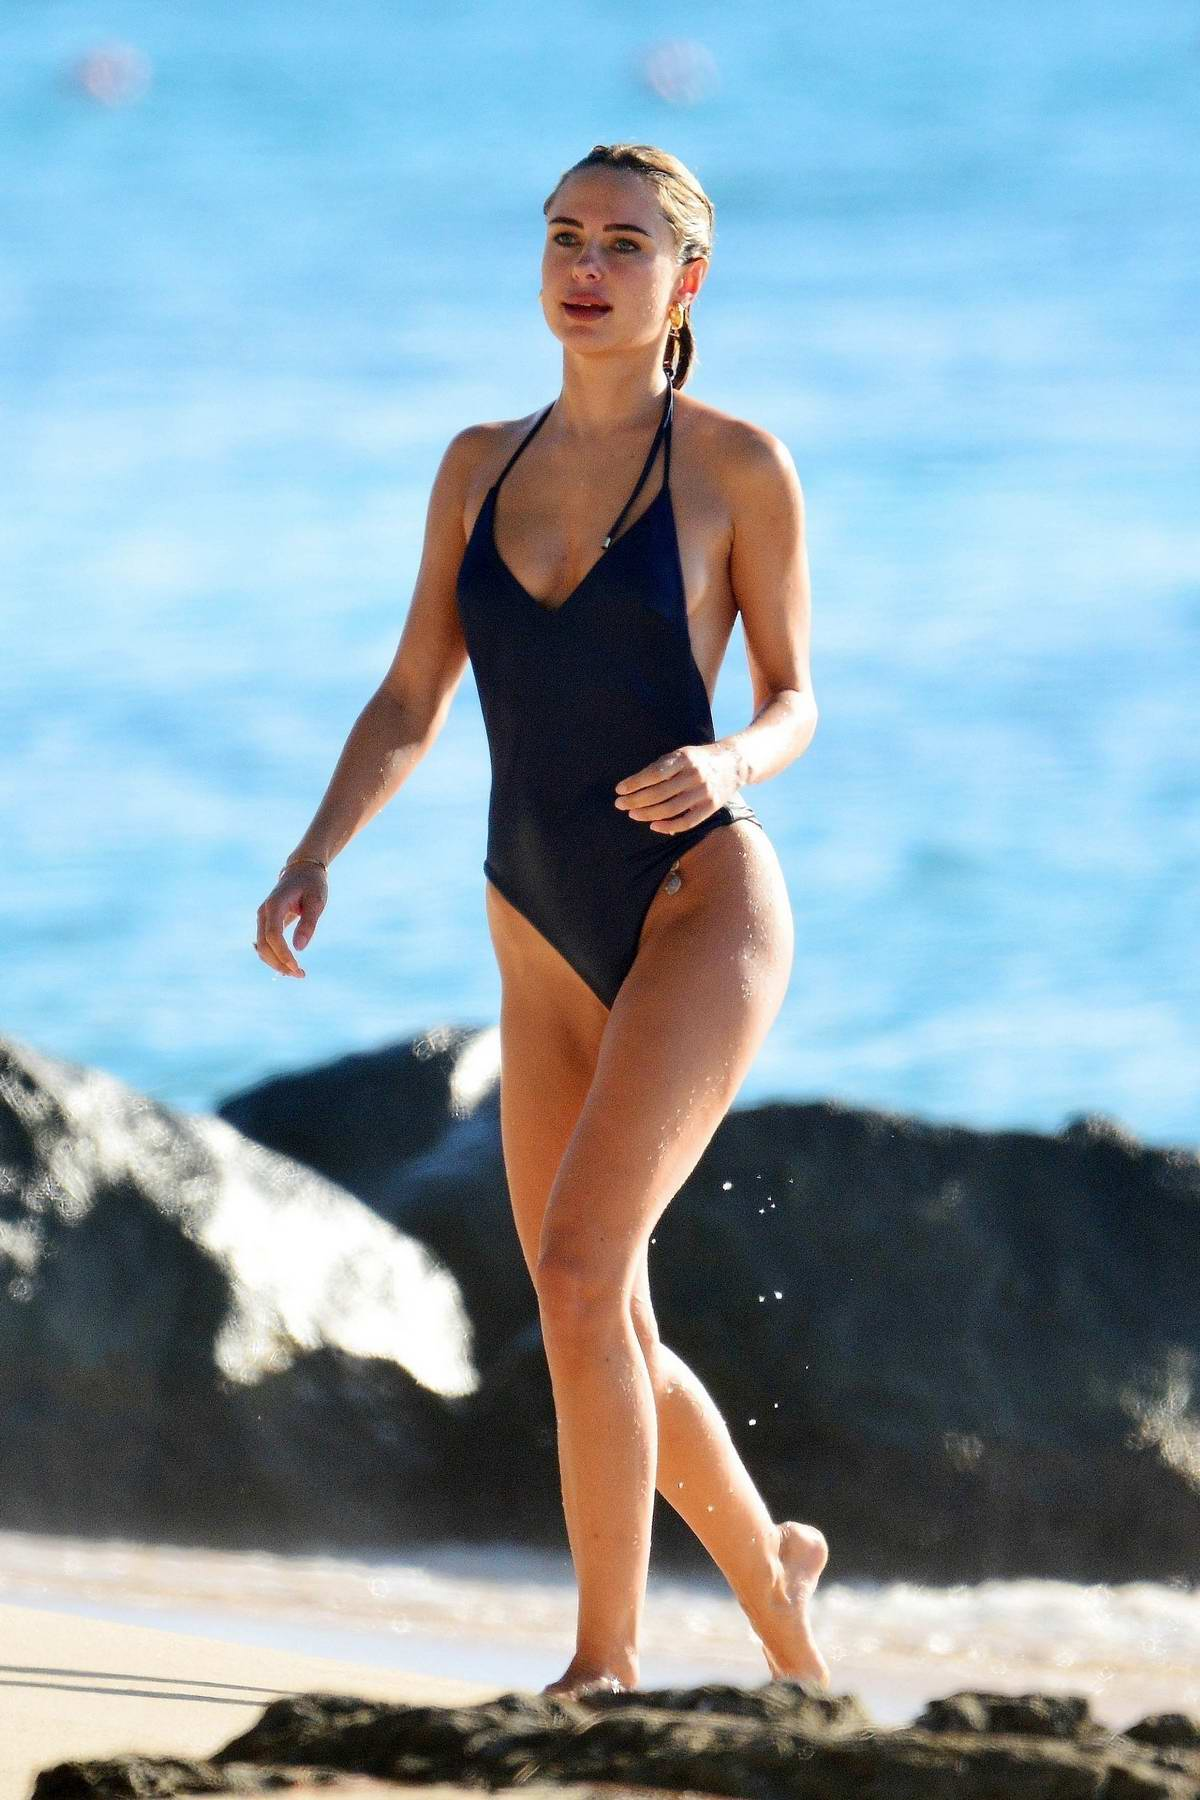 Kimberley Garner scorches the beach in a navy blue swimsuit as she continues her vacation in Barbados